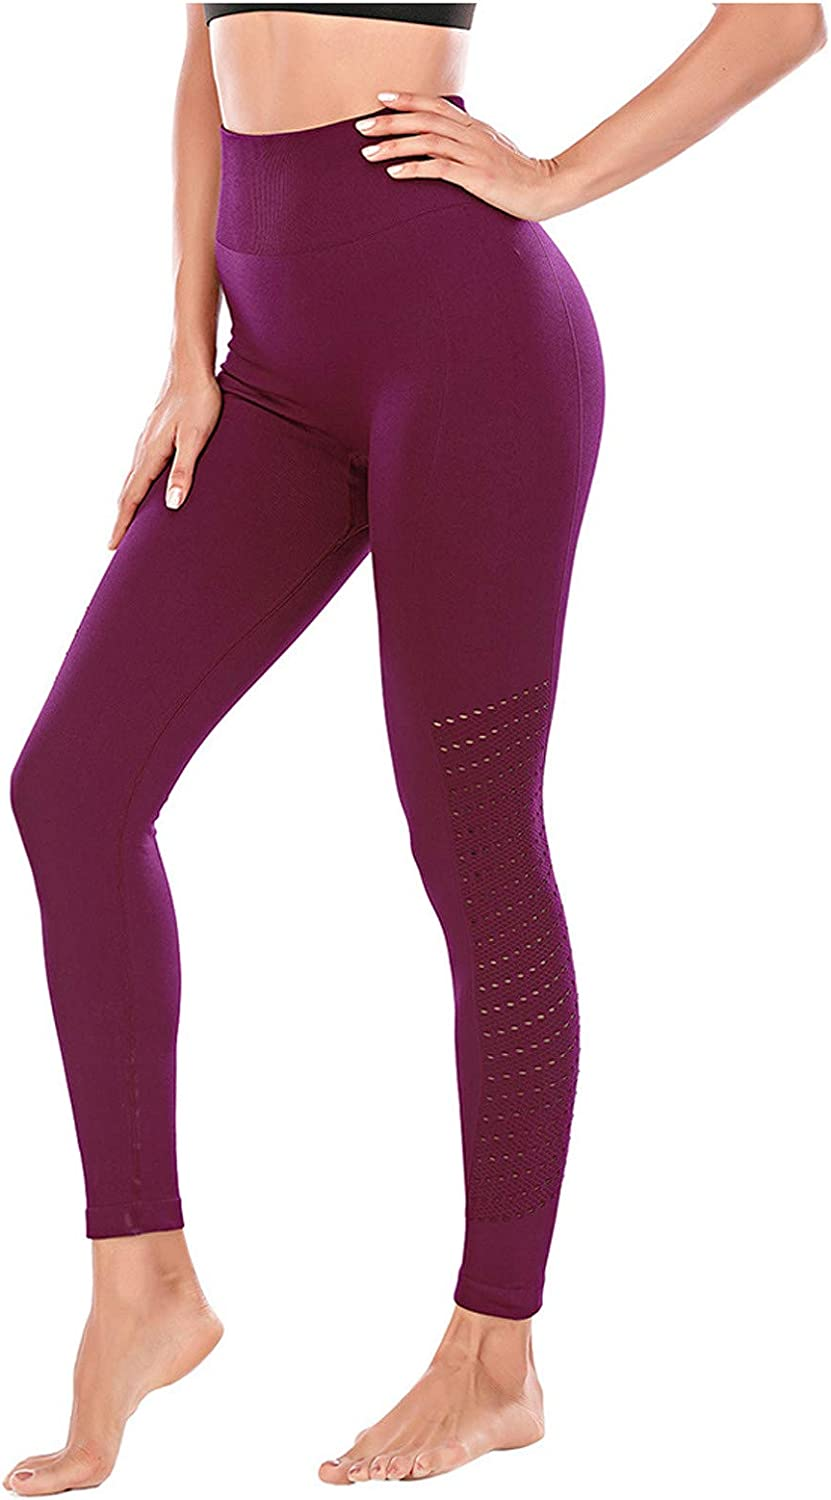 mart High Waisted Leggings for Women Butt Cellulite Max 72% OFF Wor Anti Lifting